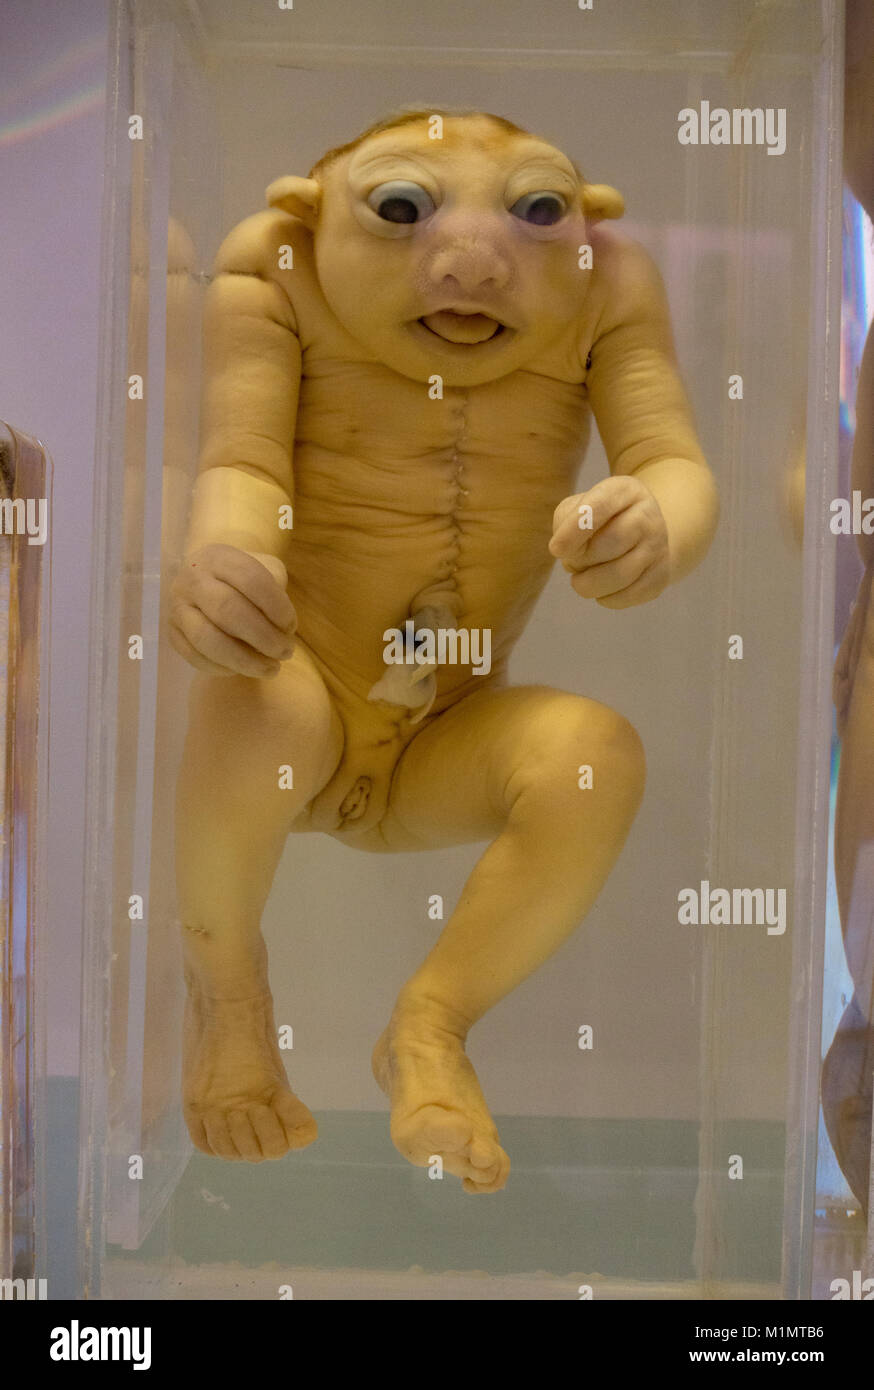 A fetus with a congenital anomaly (anencephaly) on display in the National Museum of Health and Medicine, Silver - Stock Image